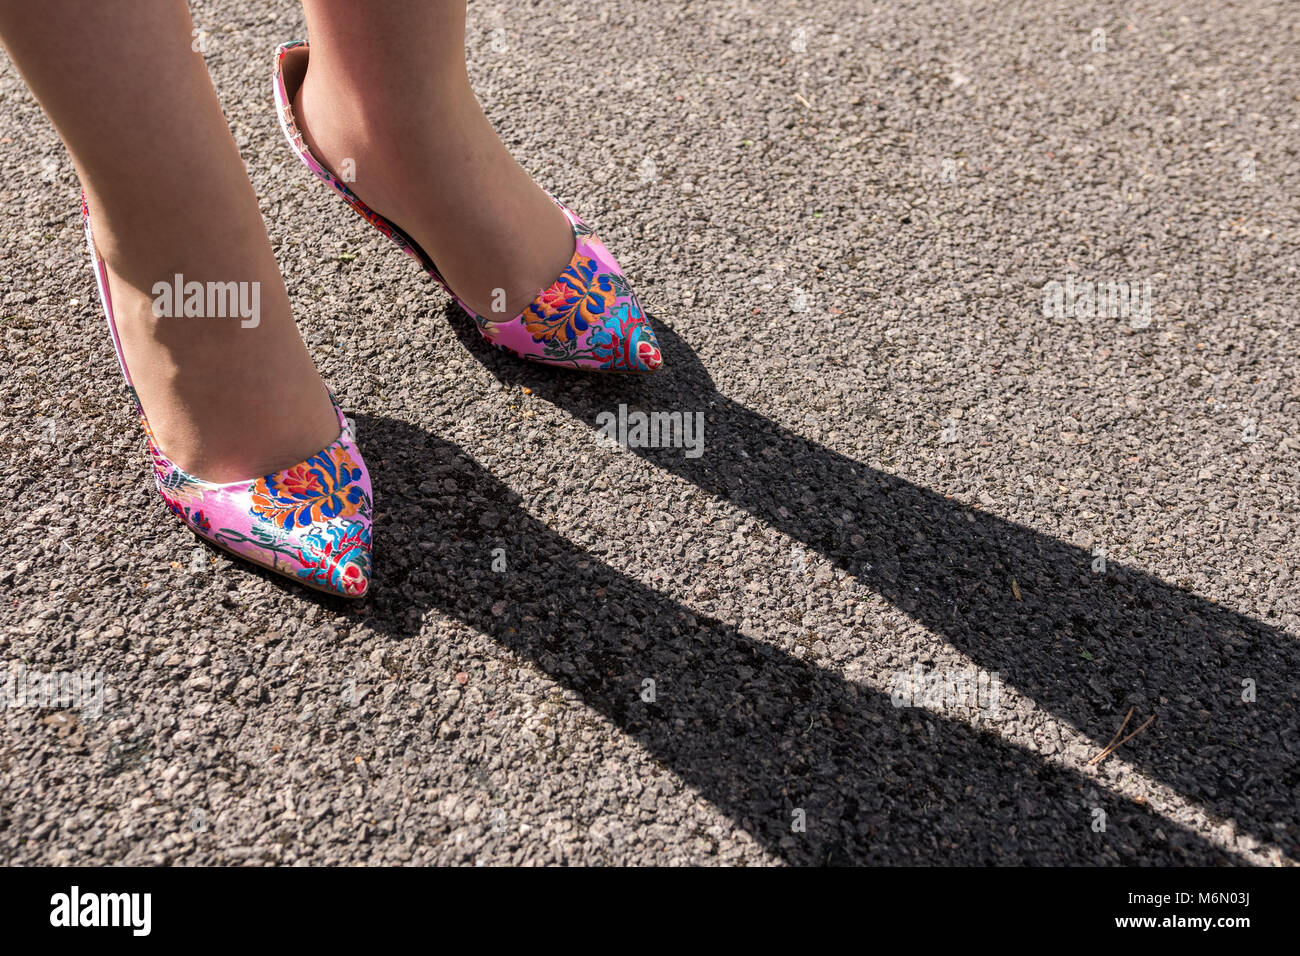 Ladies colourful high heeled shoes creating shadow - Stock Image